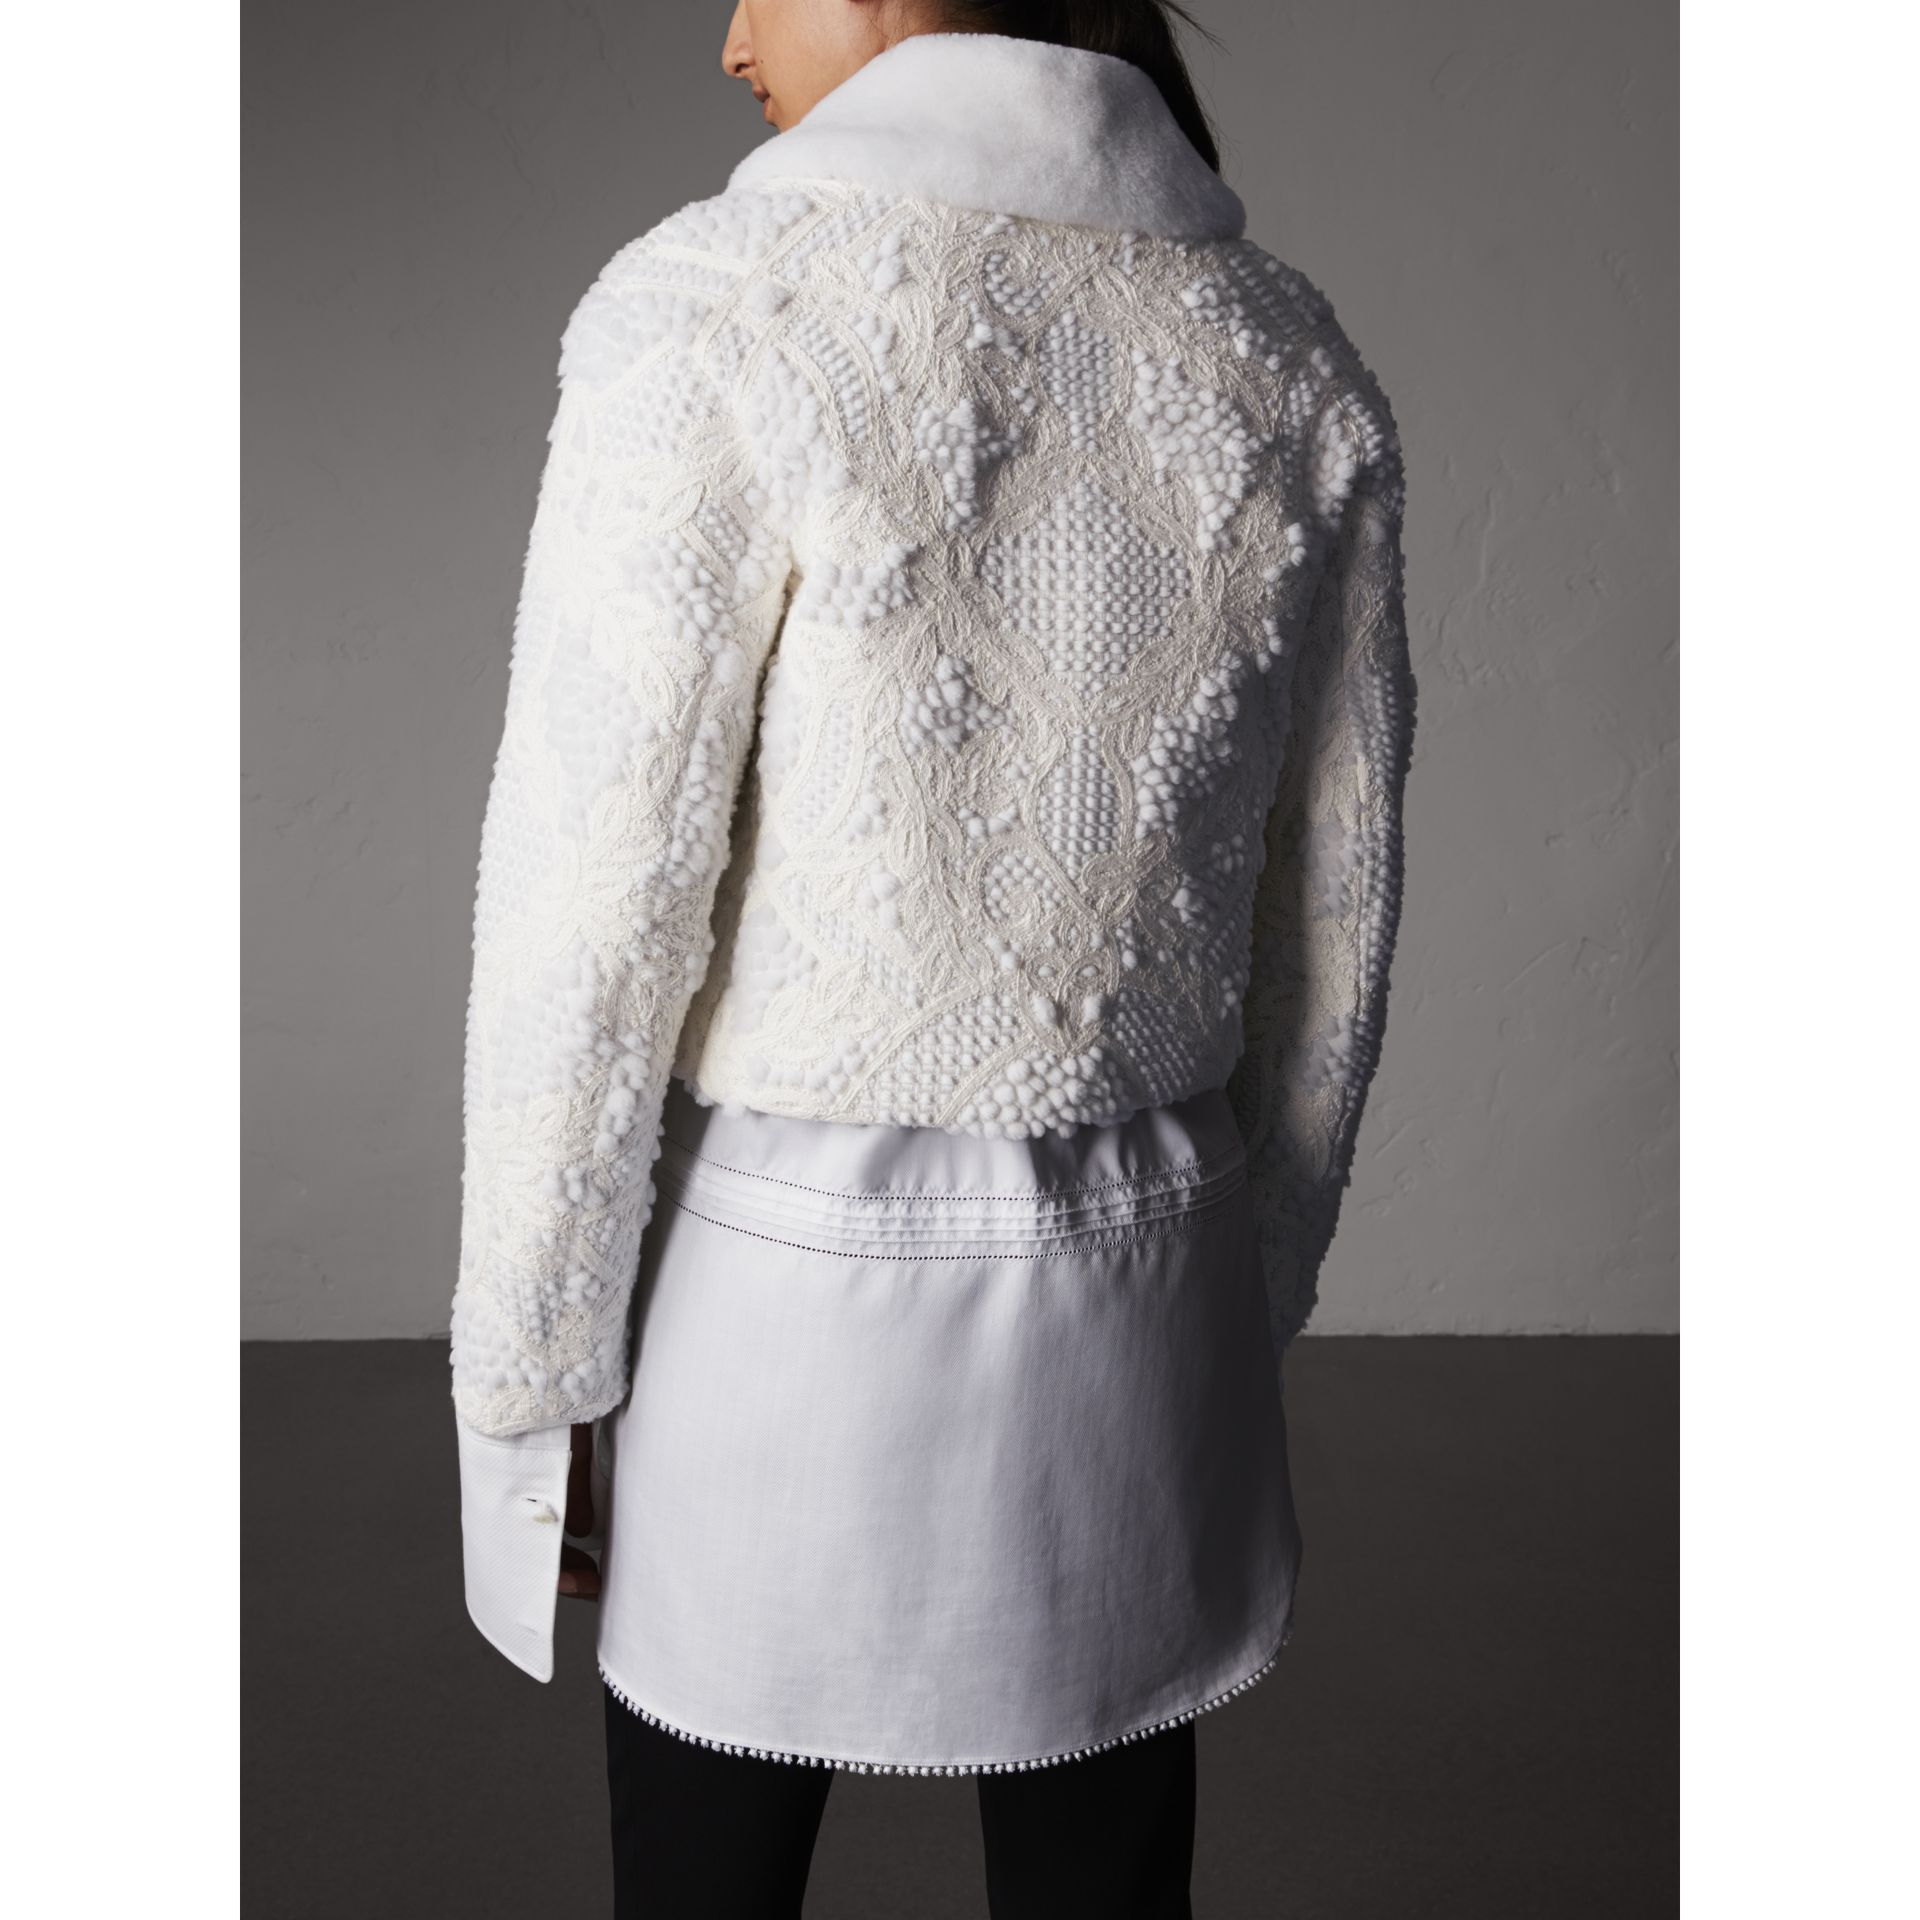 Macramé Lace-embellished Shearling Jacket in White - Women | Burberry Singapore - gallery image 2